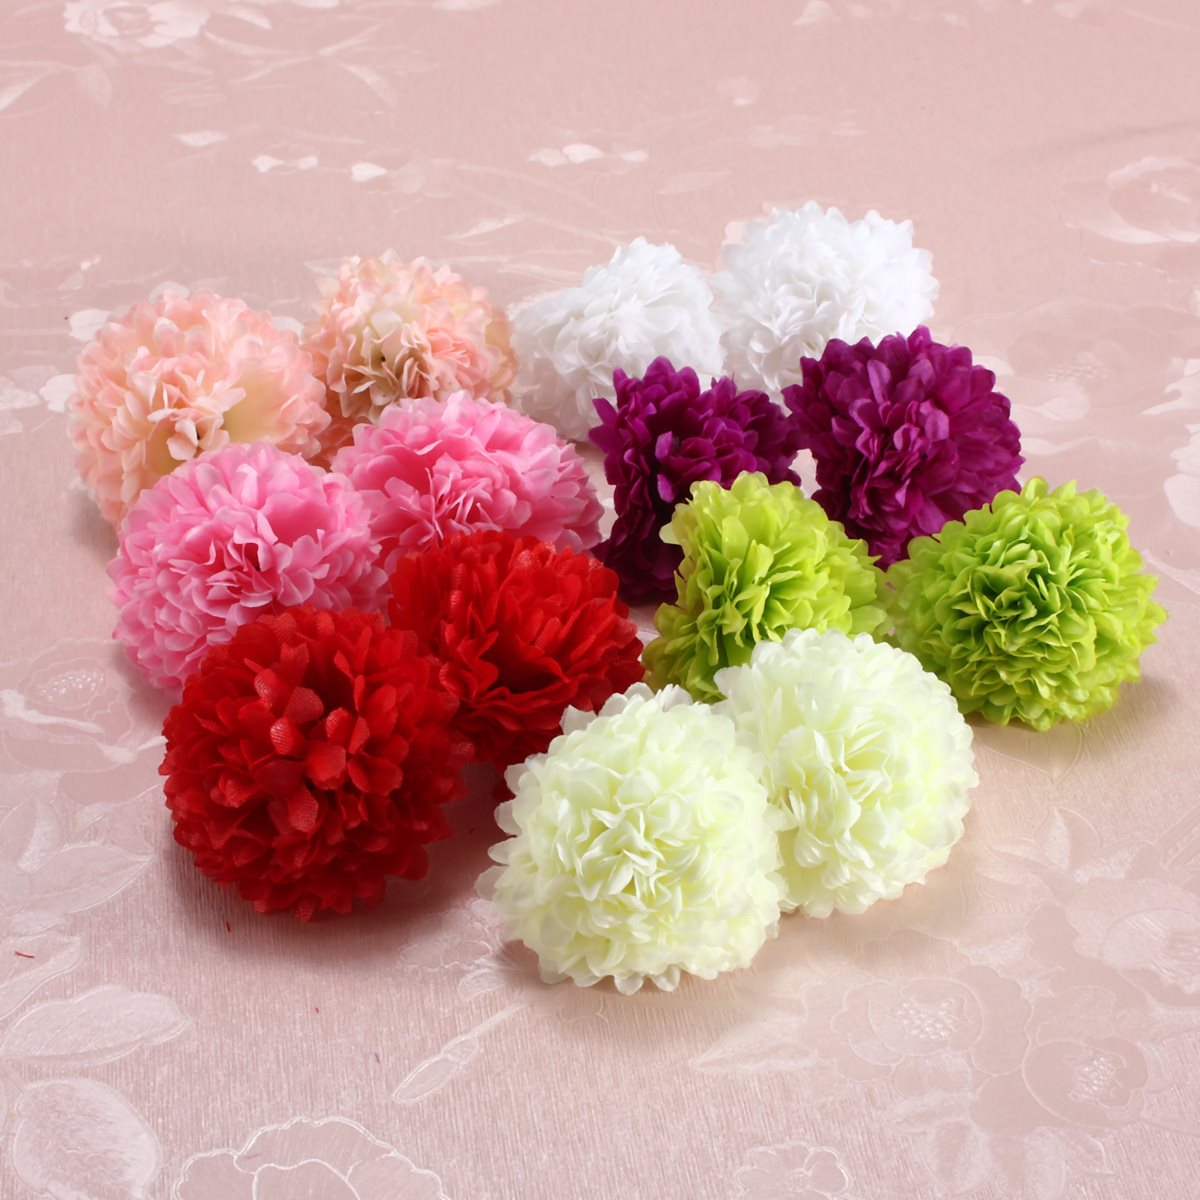 10 pcs artificial small clove carnation flowers artificial flowers 10 pcs artificial small clove carnation flowers artificial flowers silk flower head diy flower bead foam ball gifts for mother in artificial dried flowers izmirmasajfo